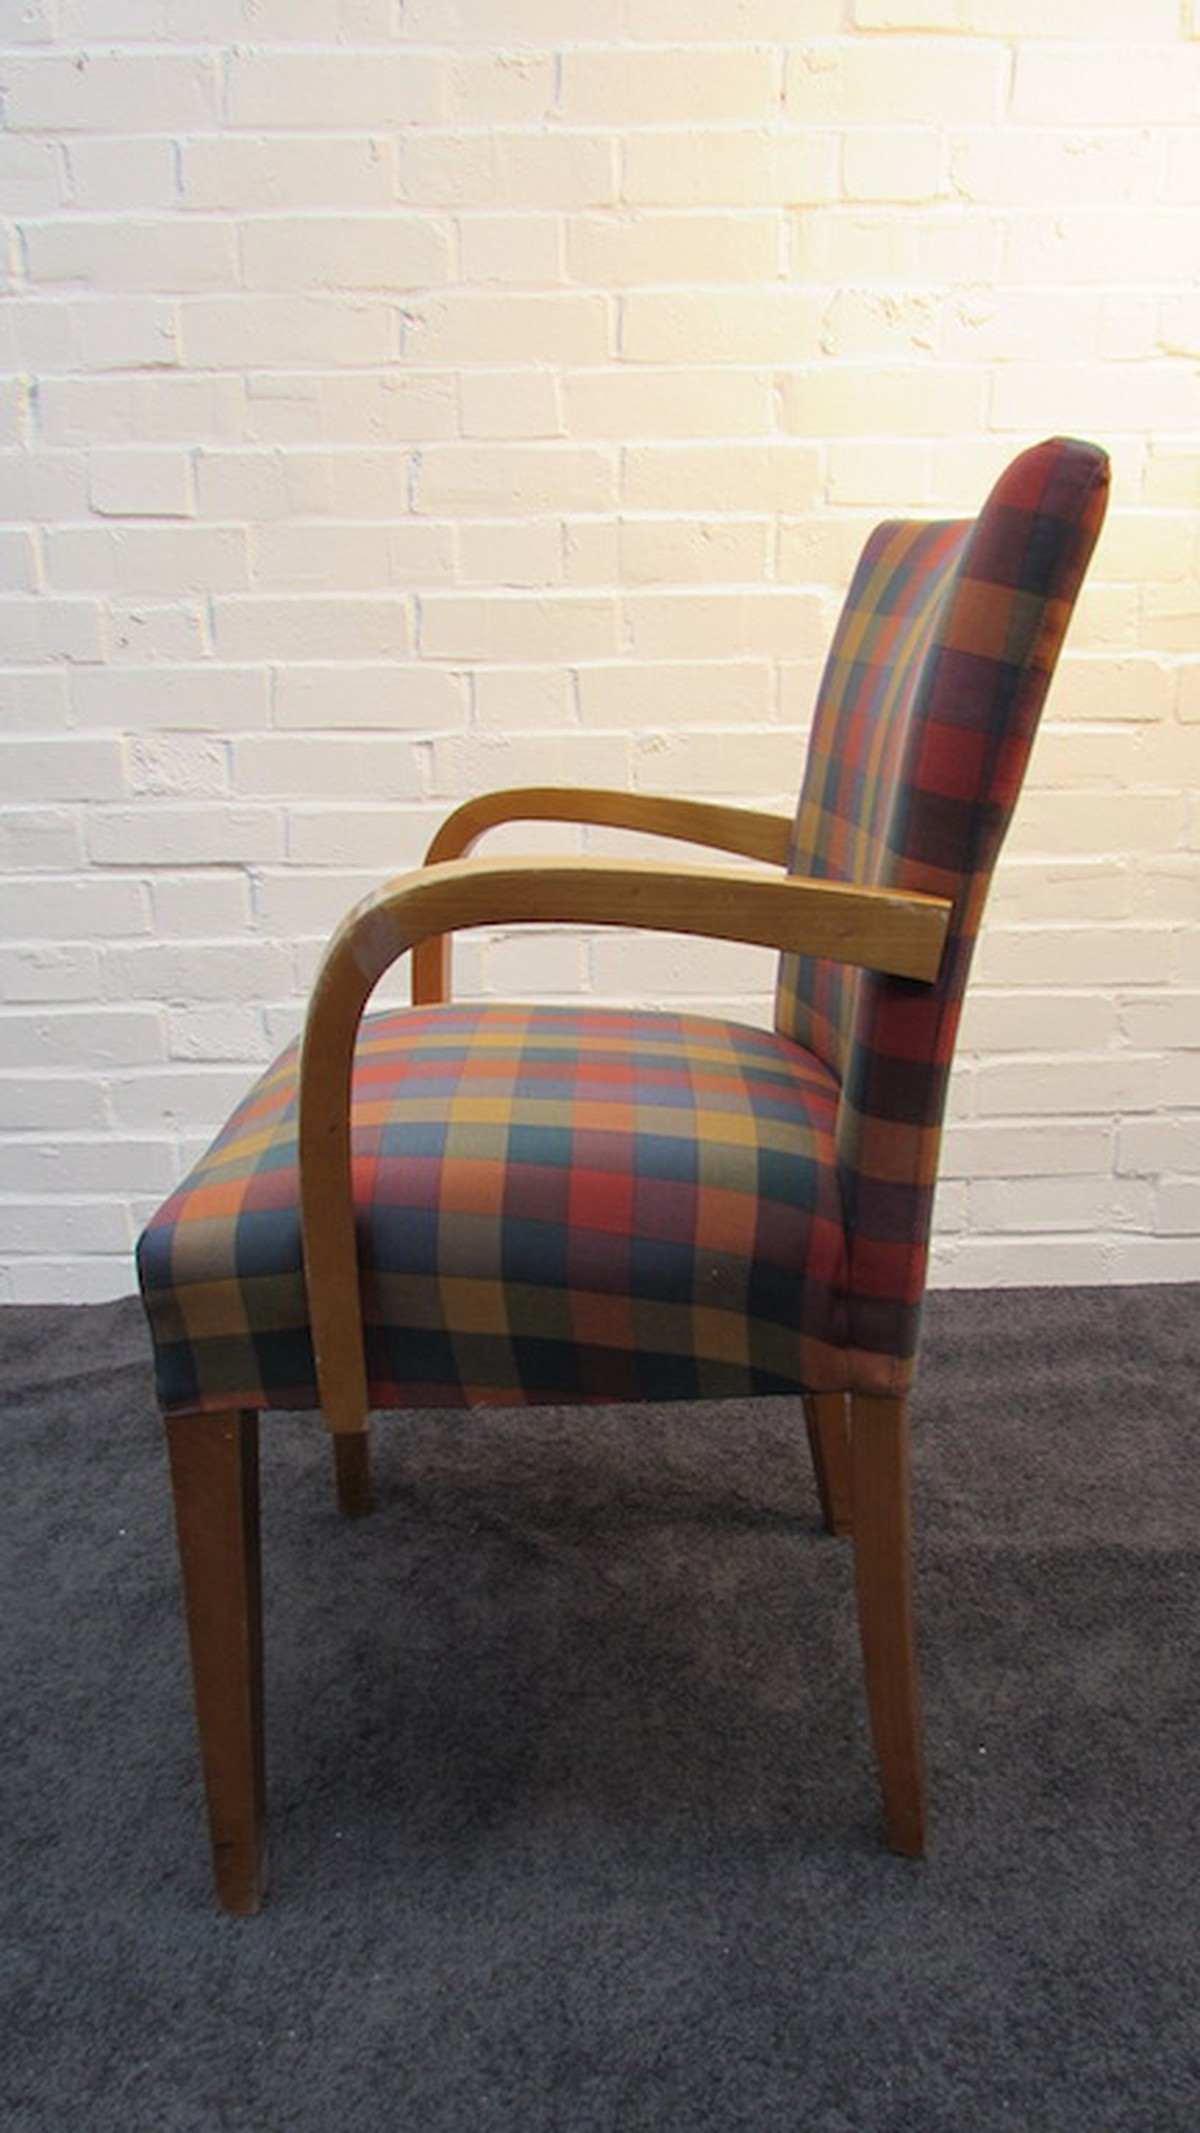 tartan dining chair covers for sale game of thrones replica chairs with arms